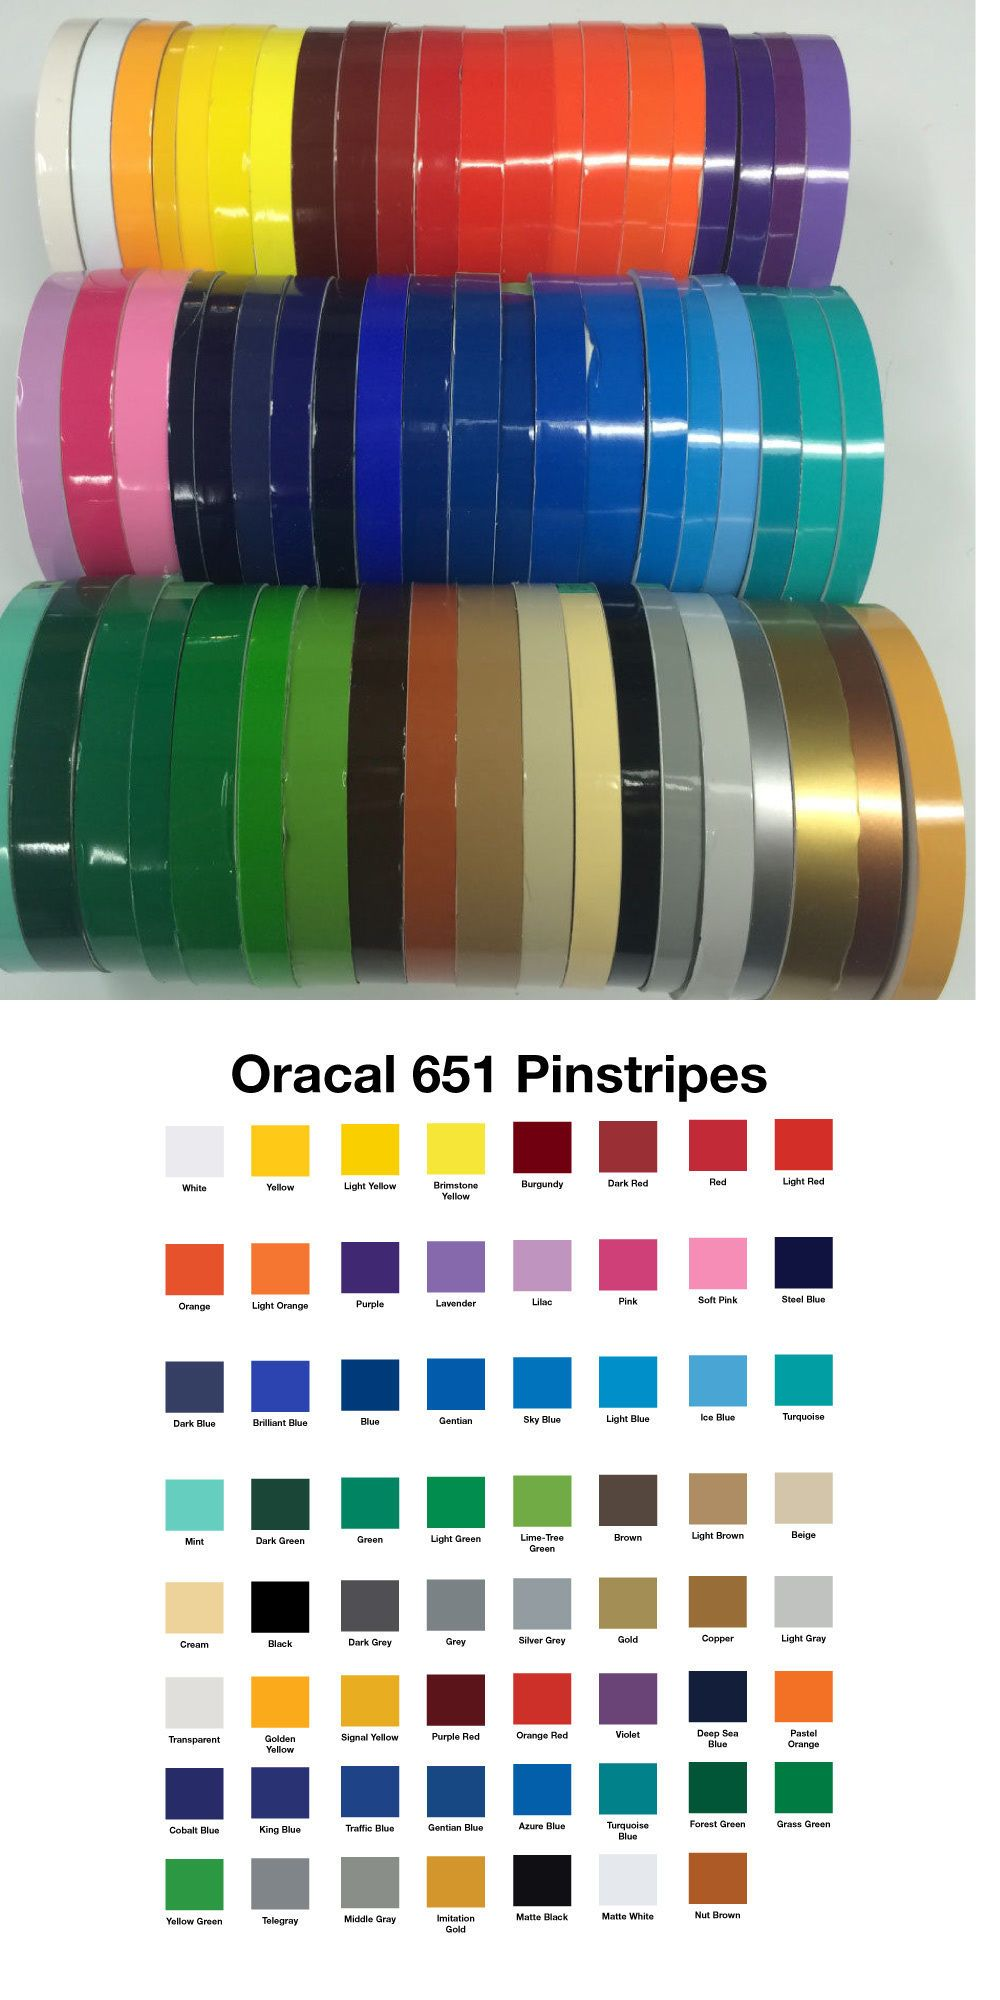 1 2 X 150 Ft Roll Oracal Vinyl Pinstriping Pinstripe Tape 63 Colors Available Oracal Vinyl Oracal Pinstriping